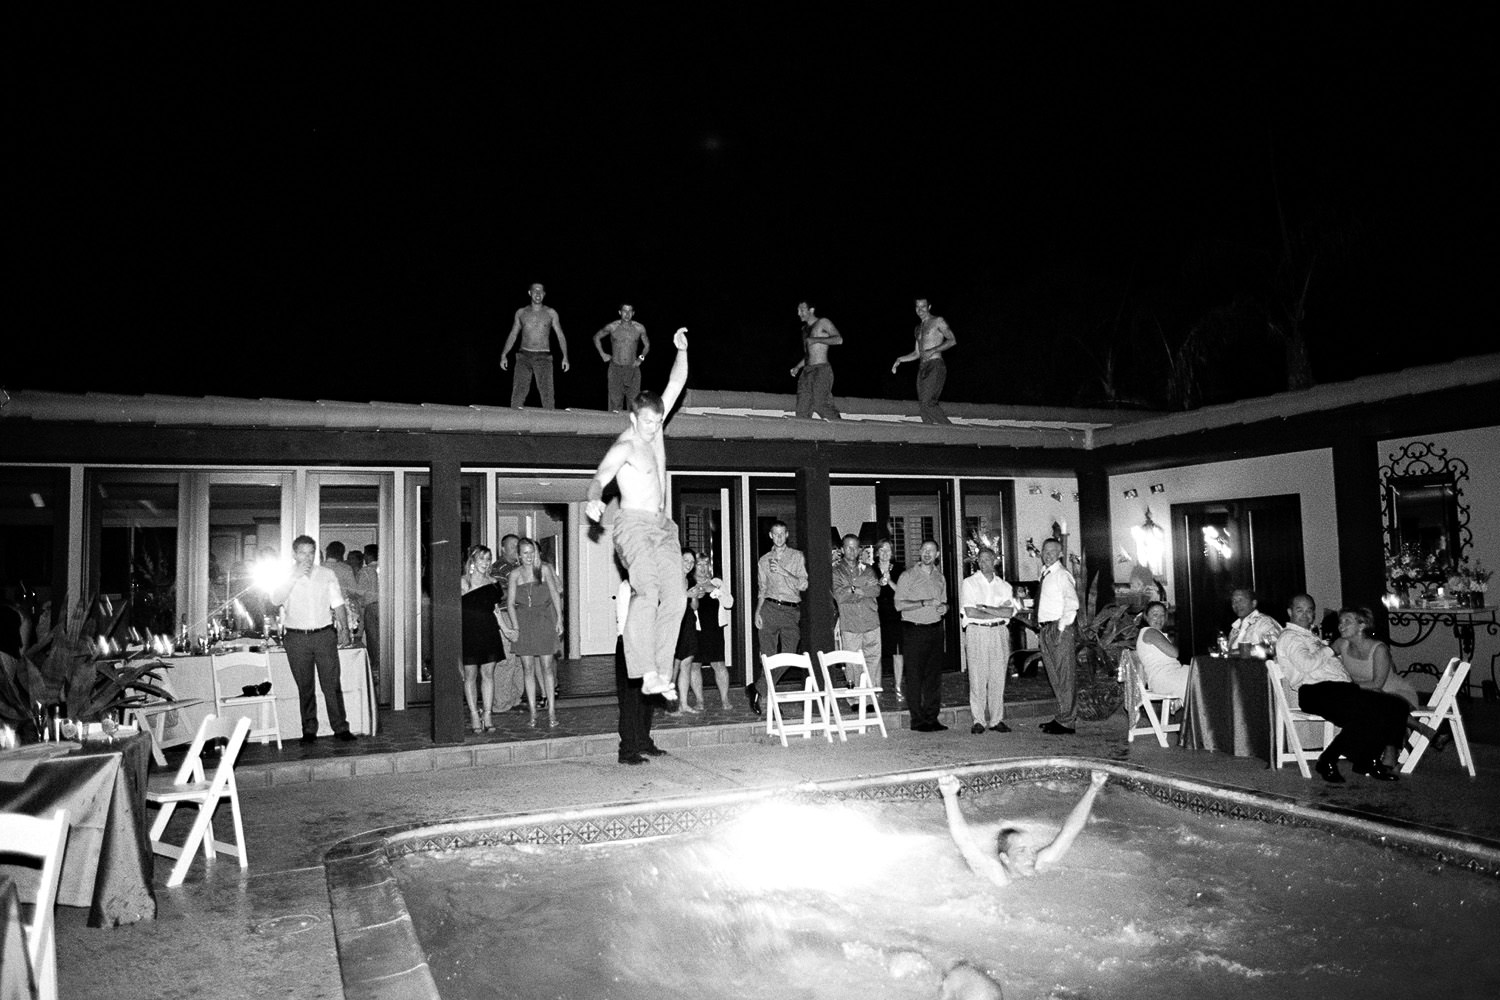 Groomsmen jump into the pool at the reception